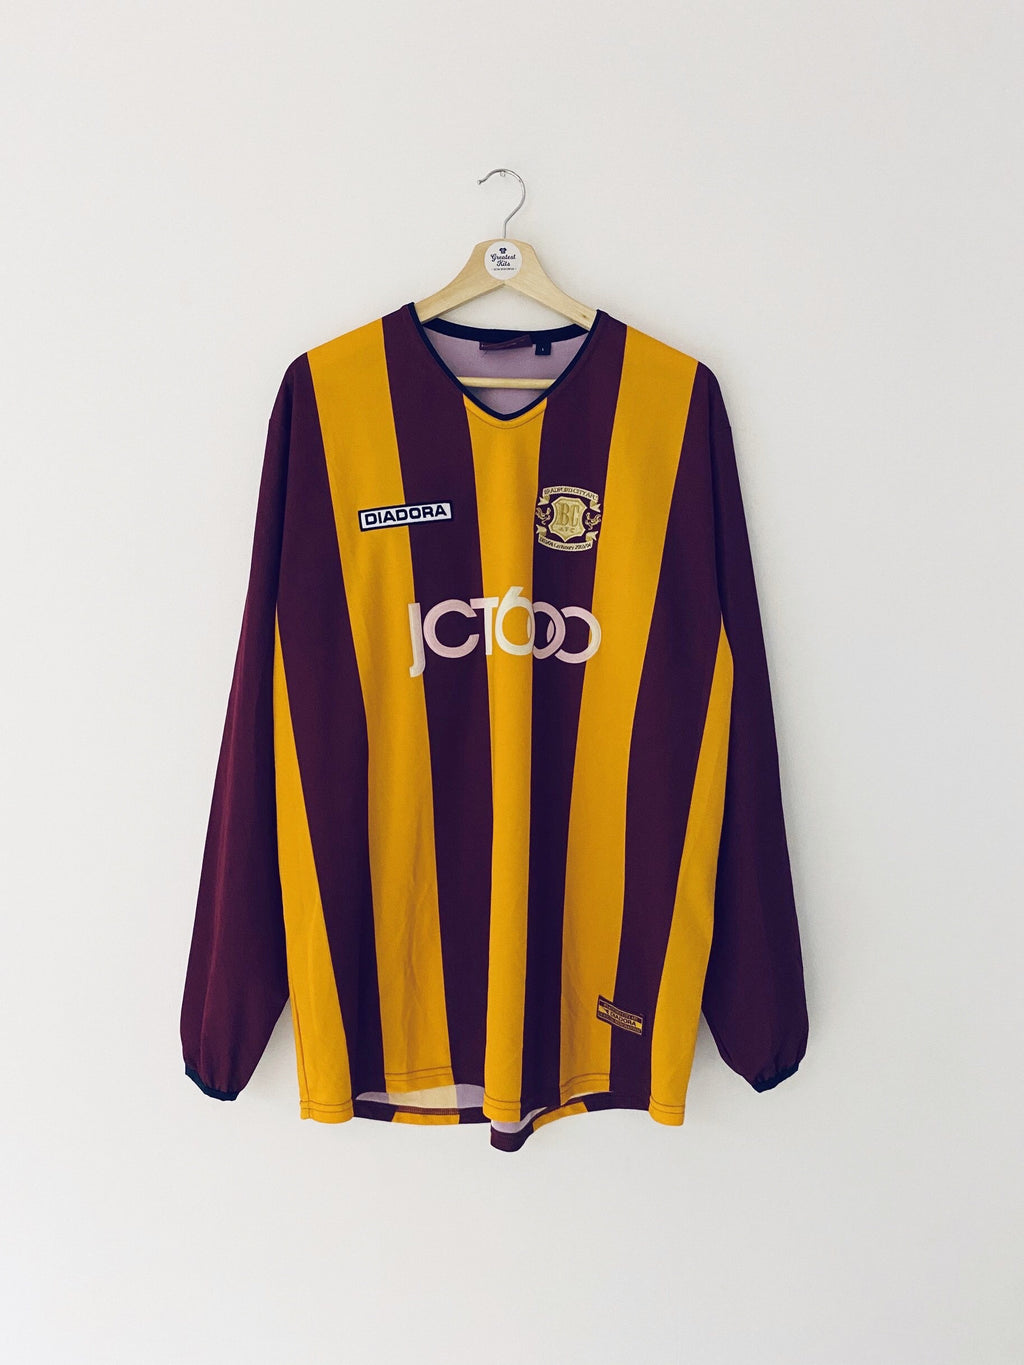 2003/04 Bradford City Home Centenary L/S Shirt (L) 8/10